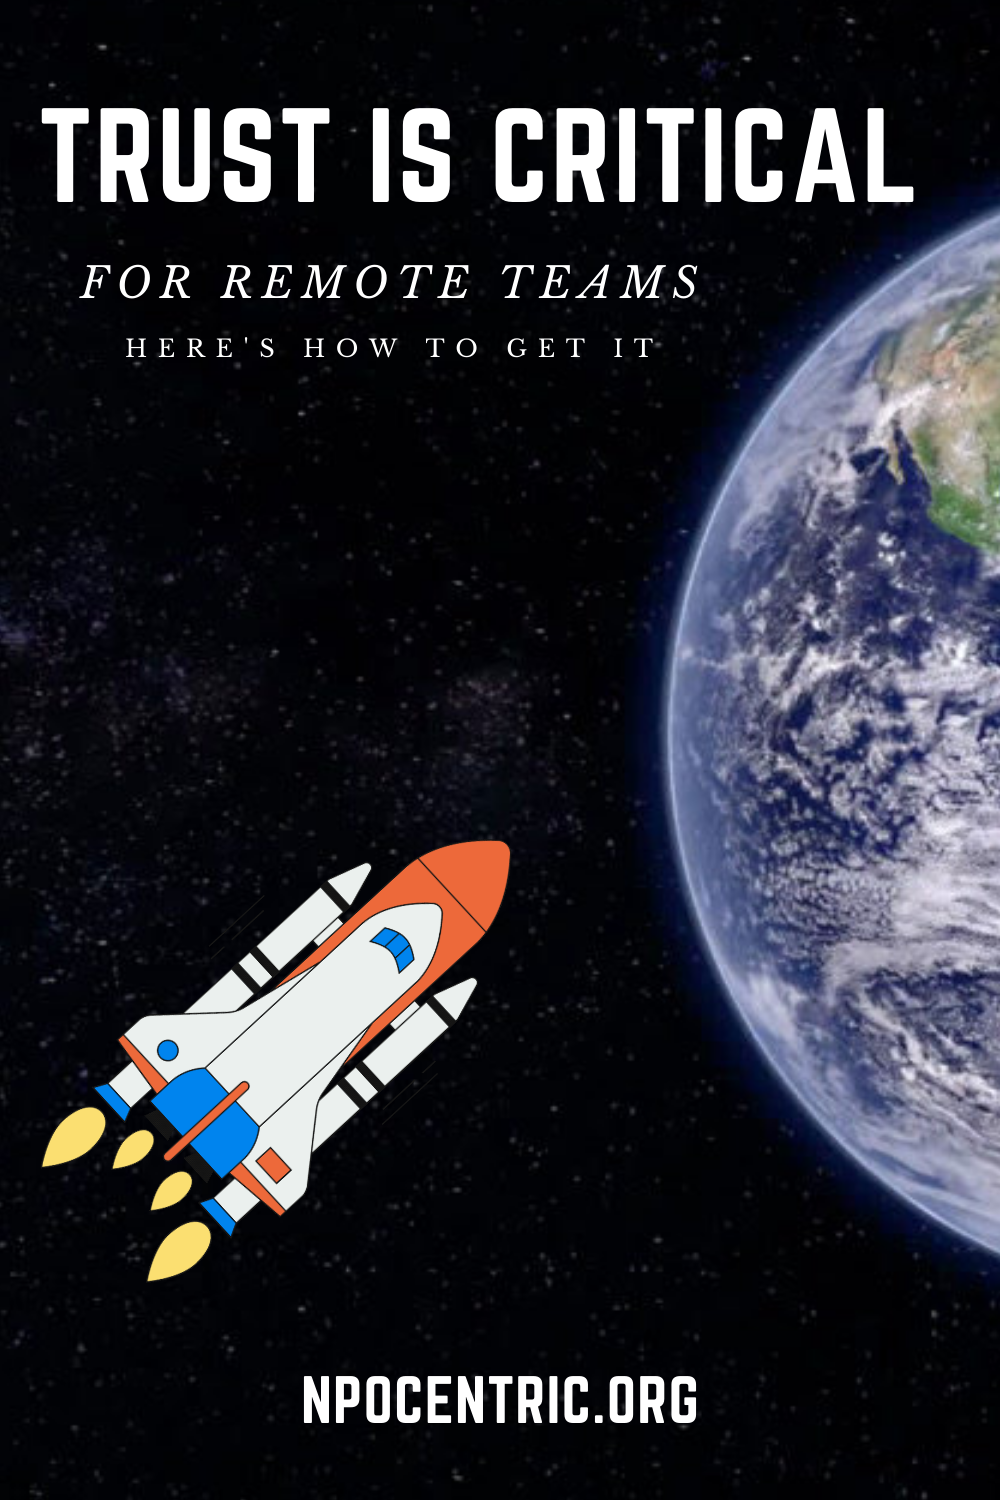 trust is critical for remote teams